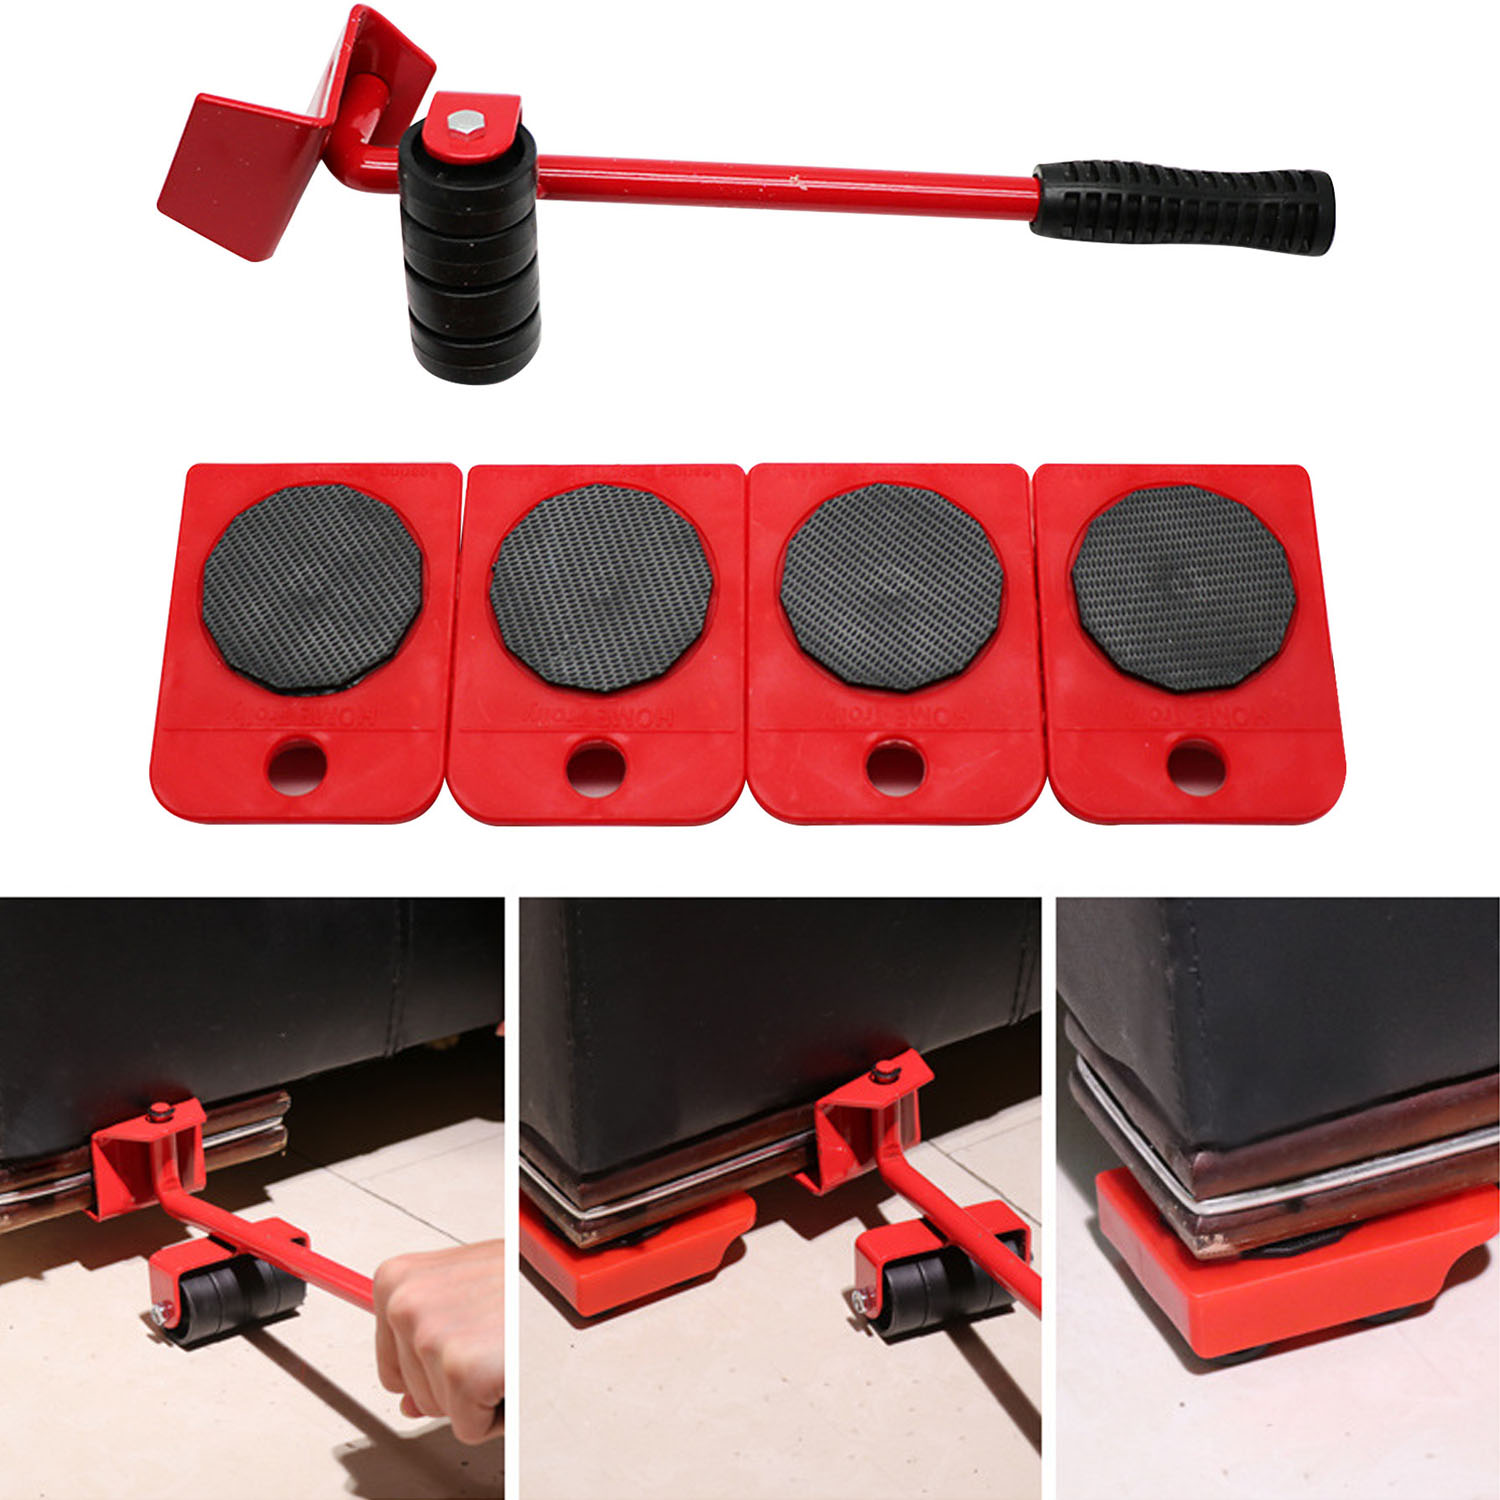 Portable Furniture Lifter Moving Transport Household Hand Tools Set Including 4 Mover Roller + 1 Wheel Bar